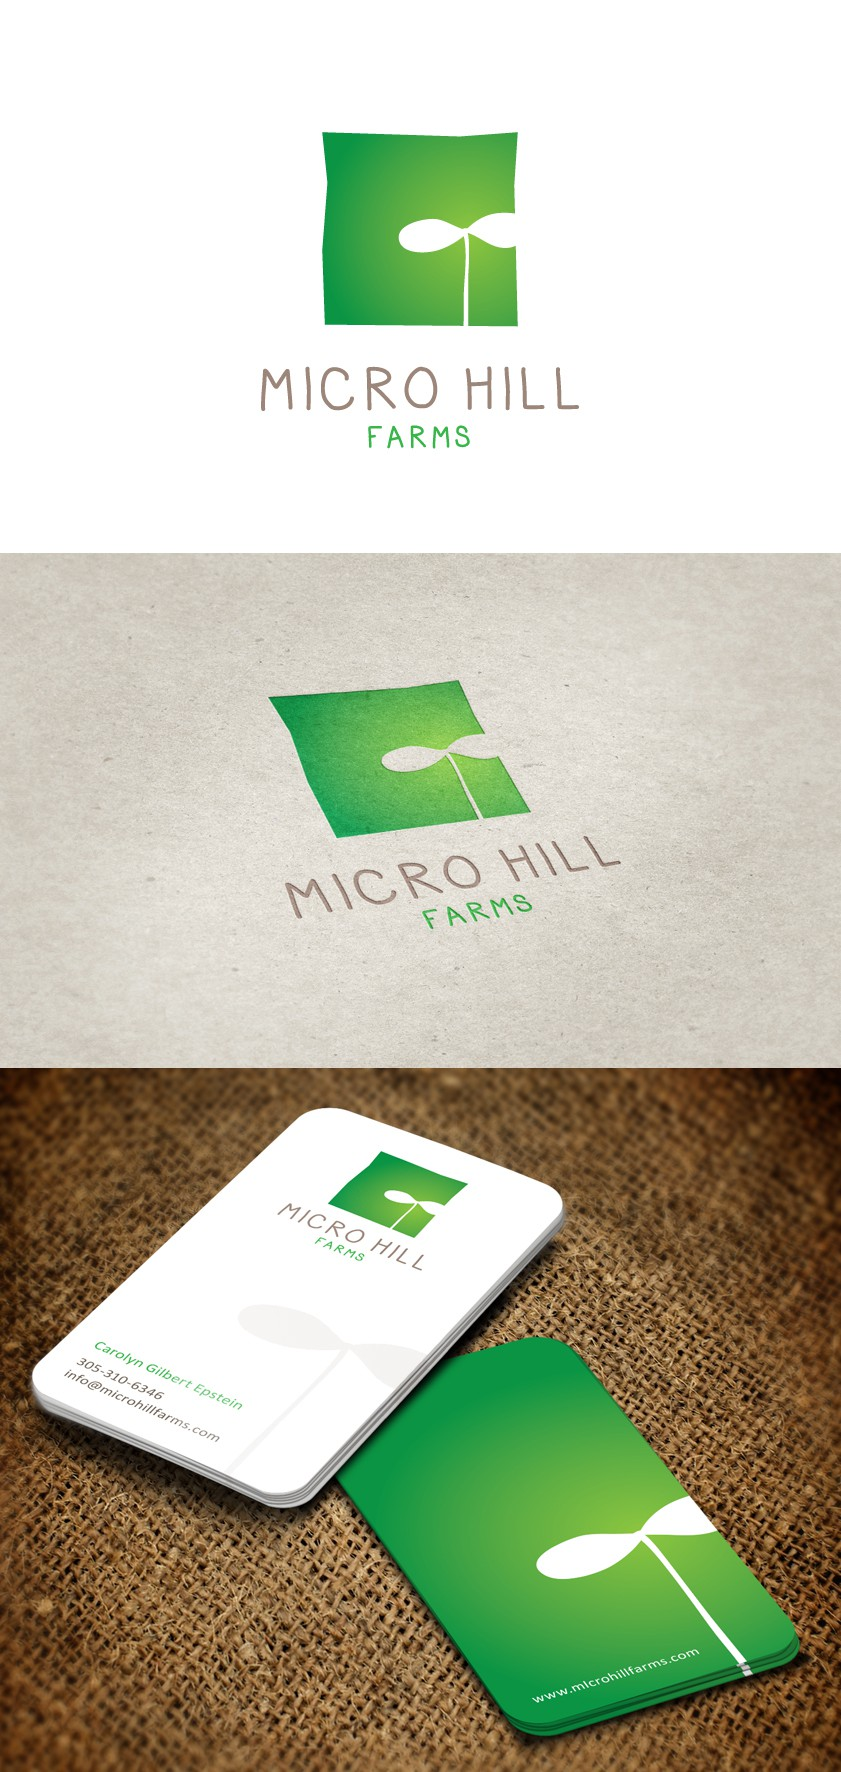 New logo and business card wanted for Micro Hill Farms